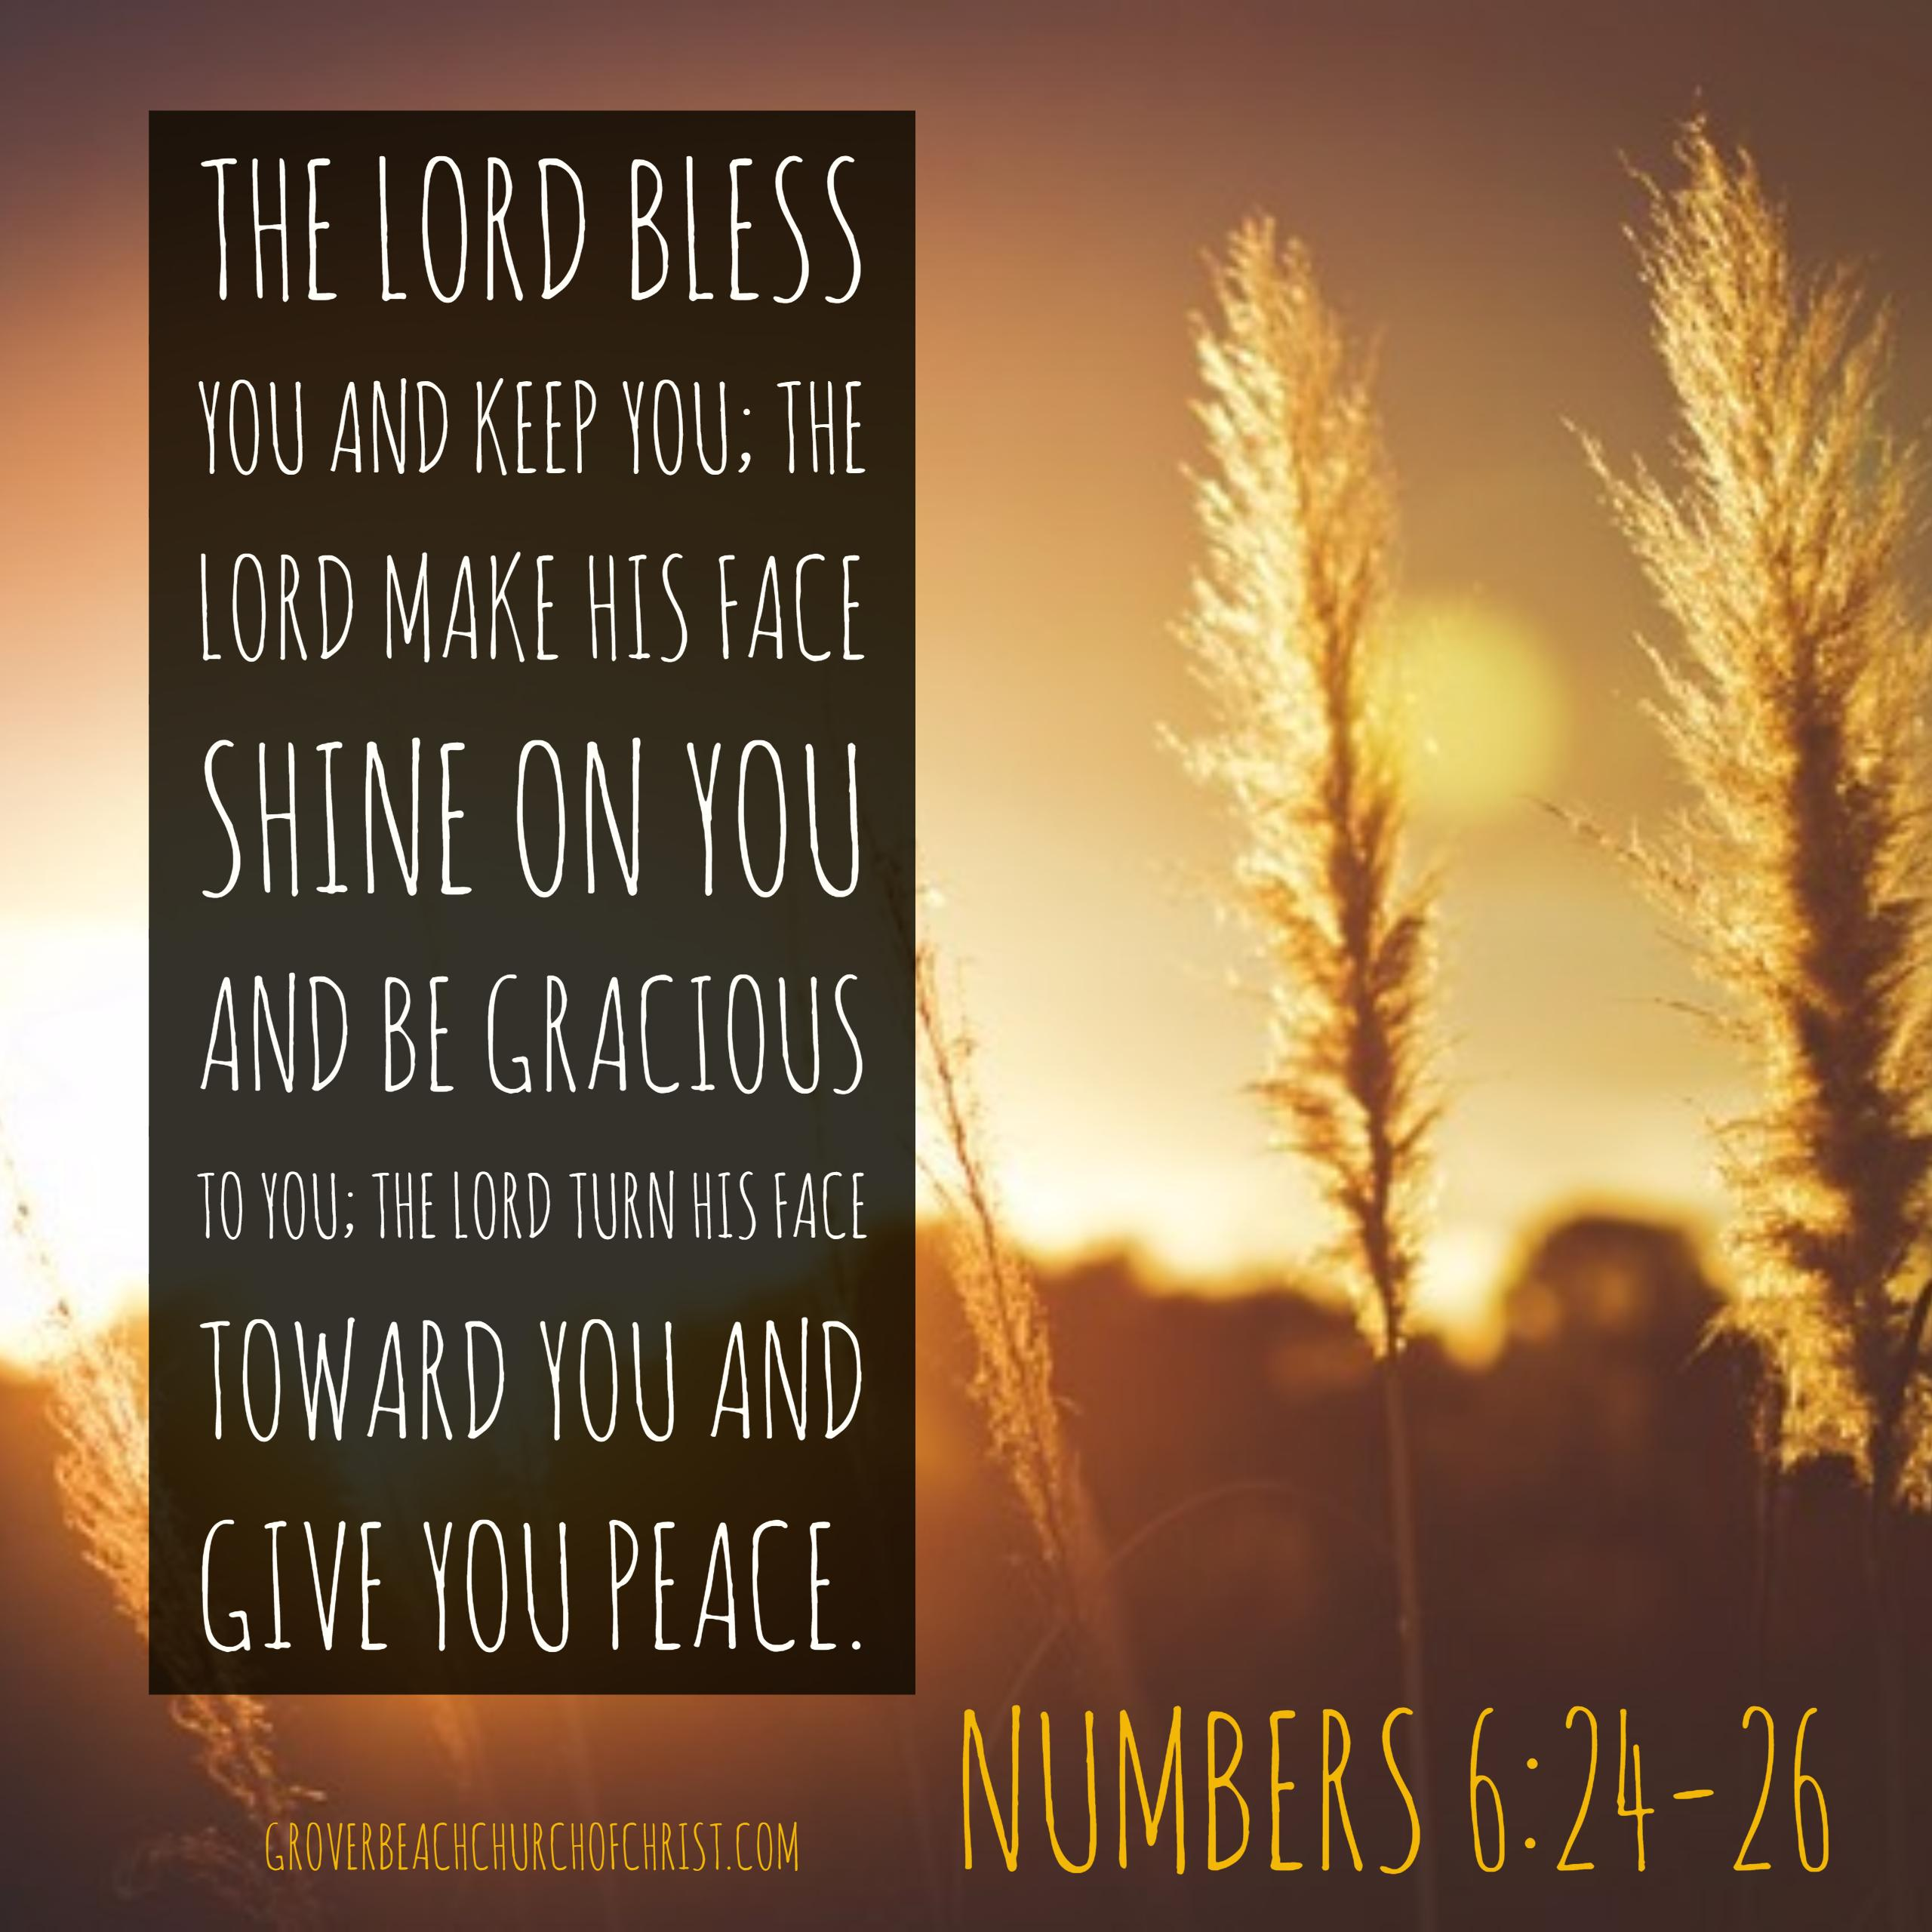 Numbers 6-24, 26 The lord bless you